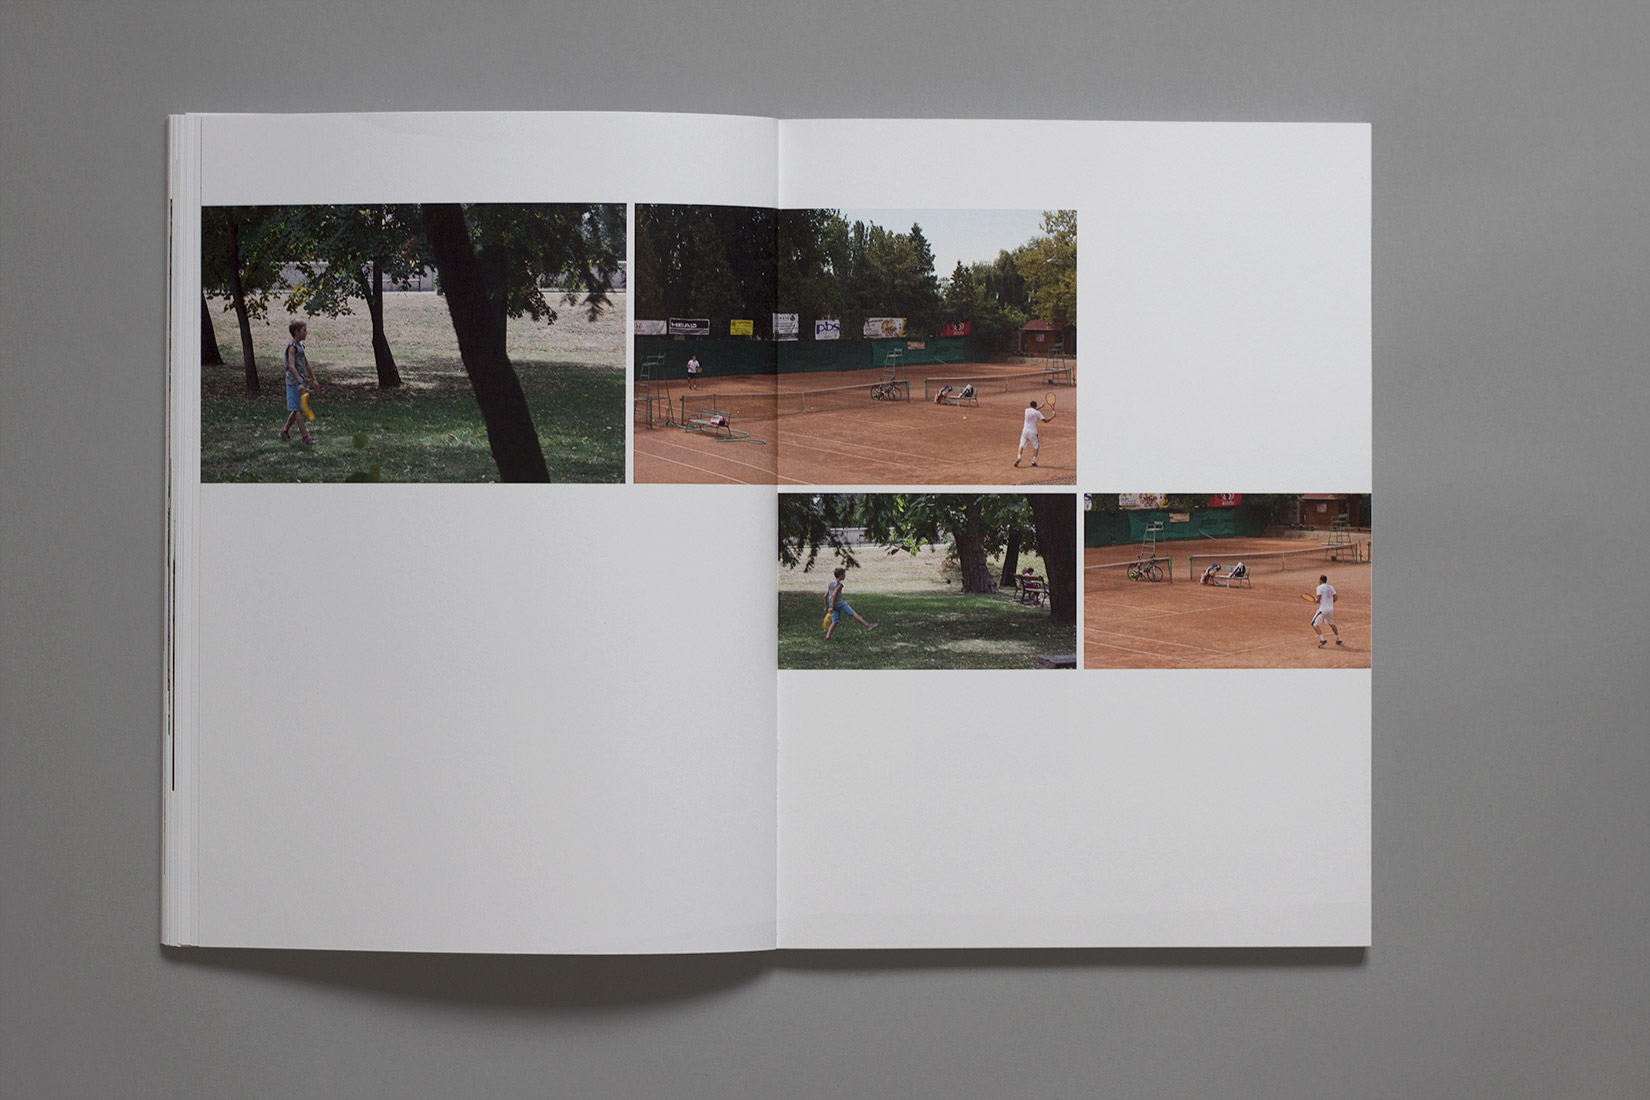 Study trip, book, Győr, tennis court, player, kid